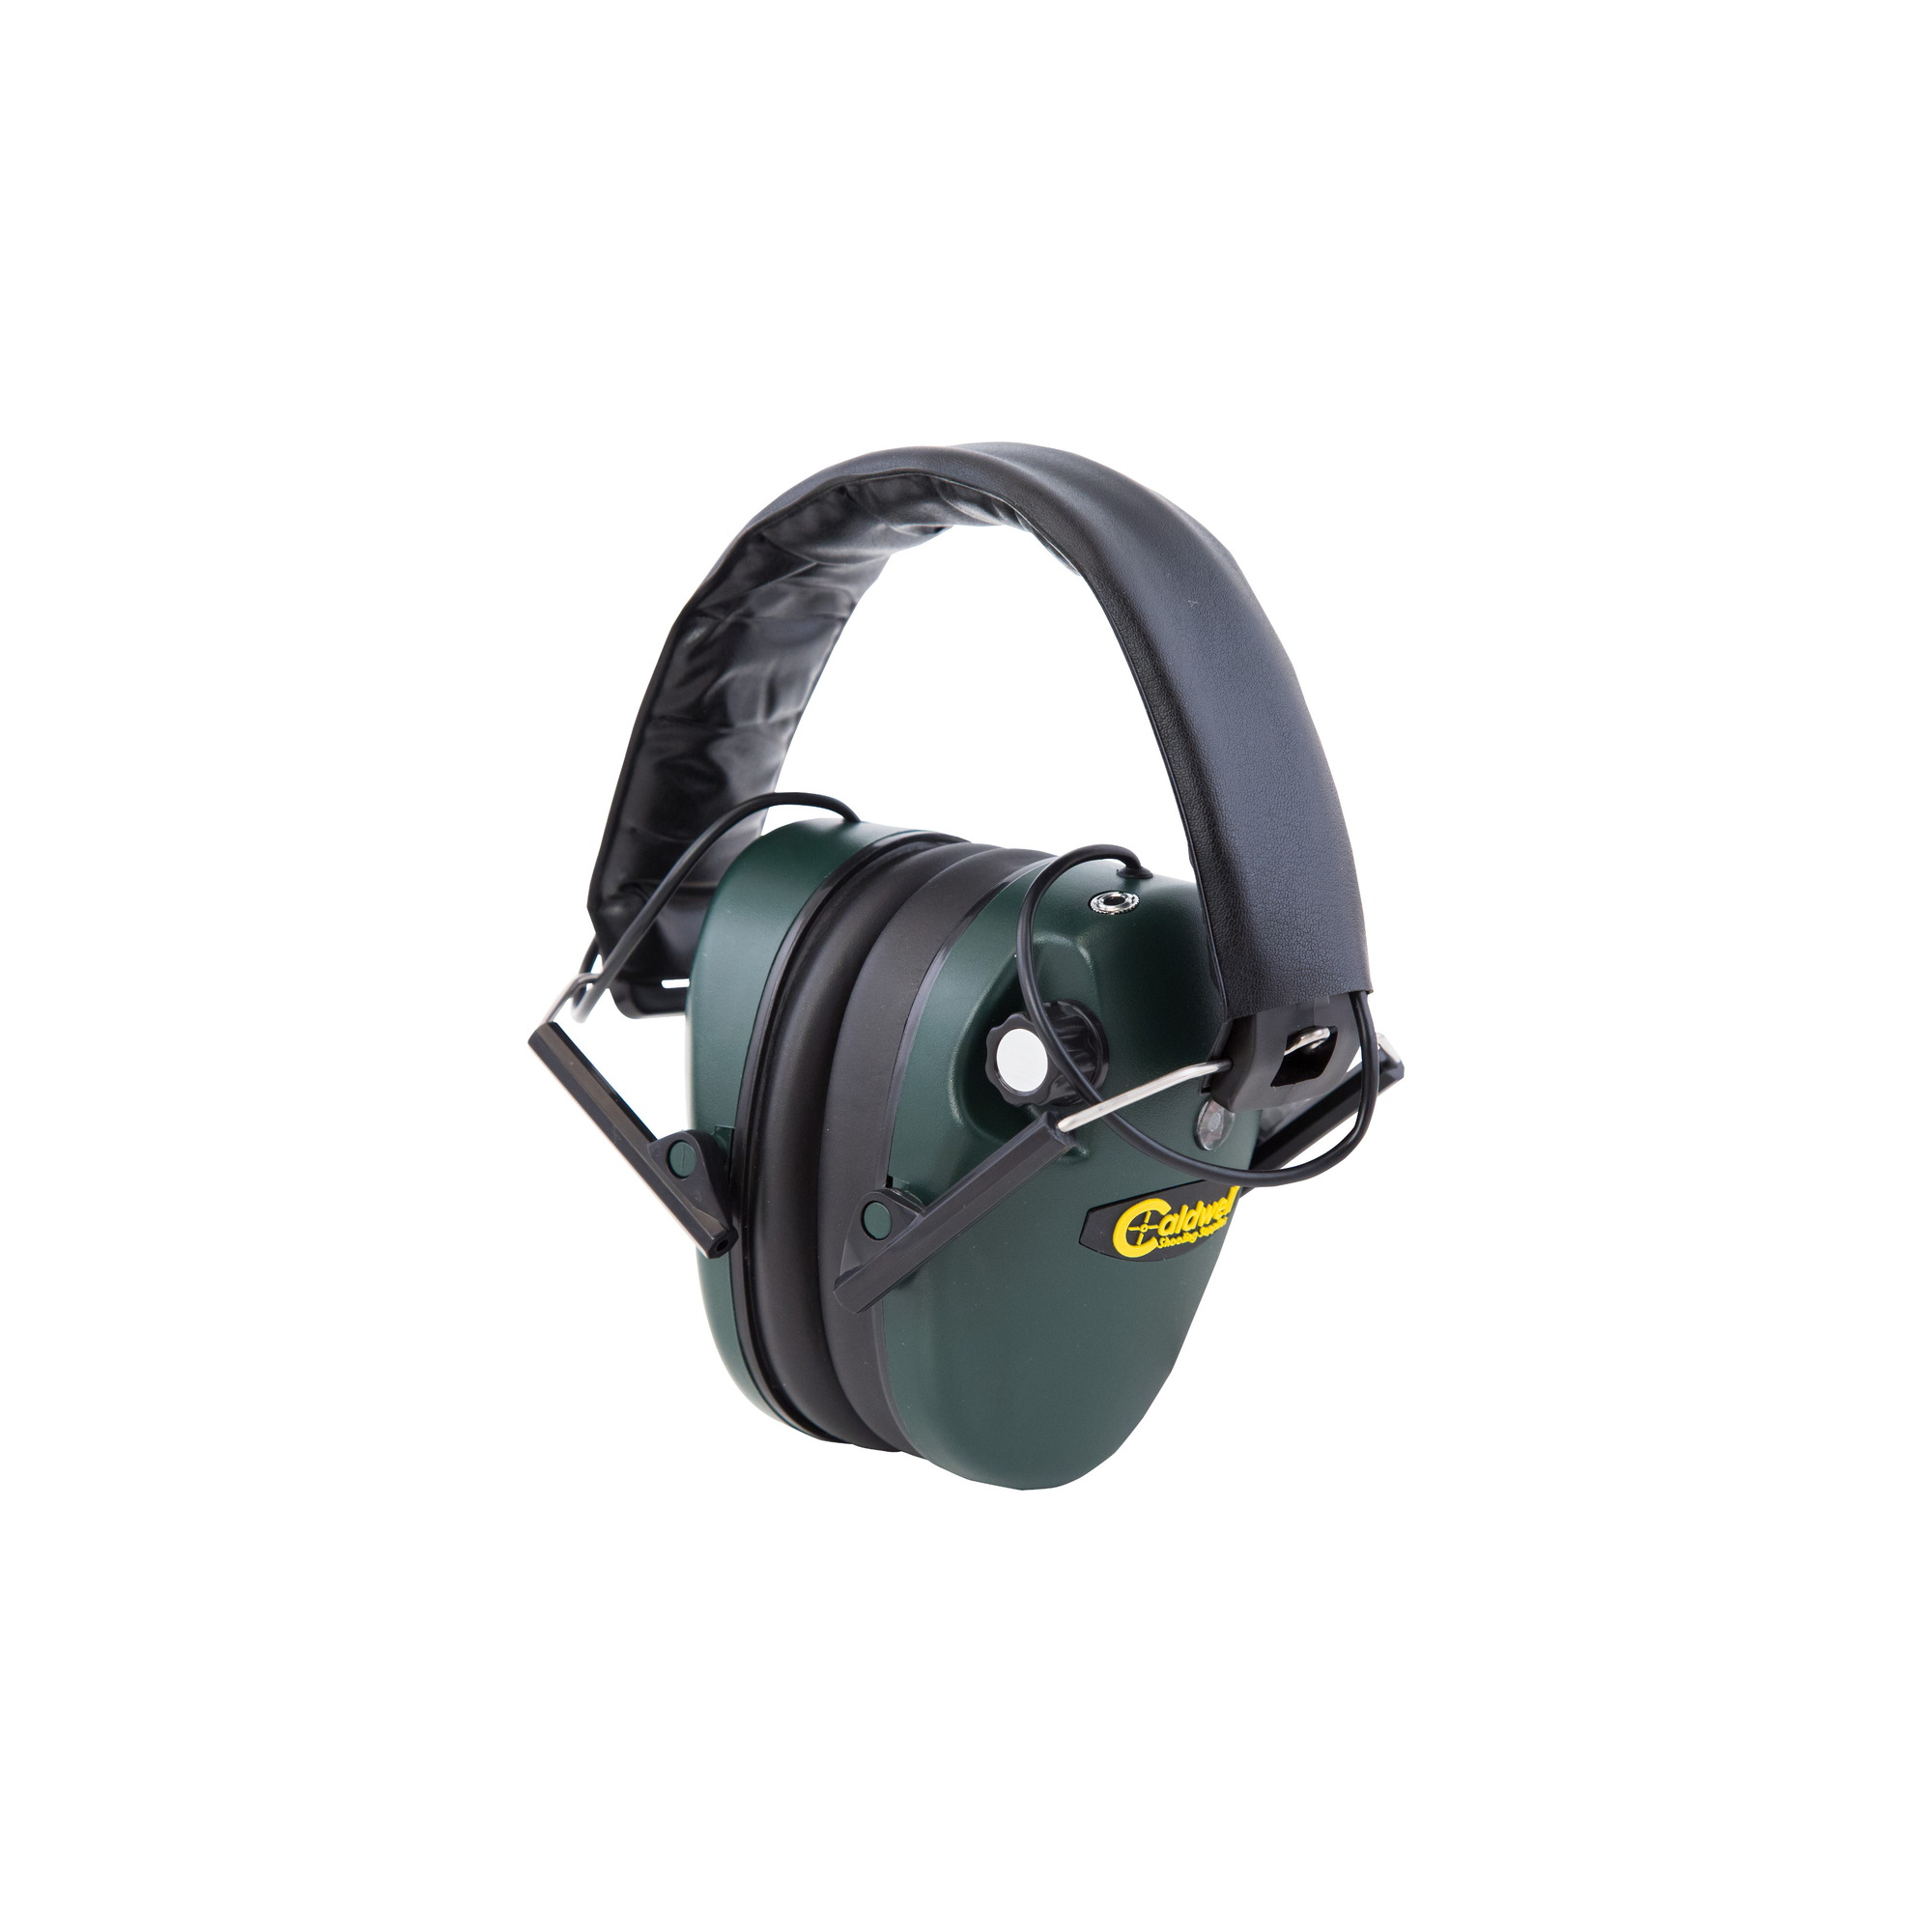 Details about  /Caldwell E-MAX Electronic Earmuffs NRR 25dB Green NEW 497700